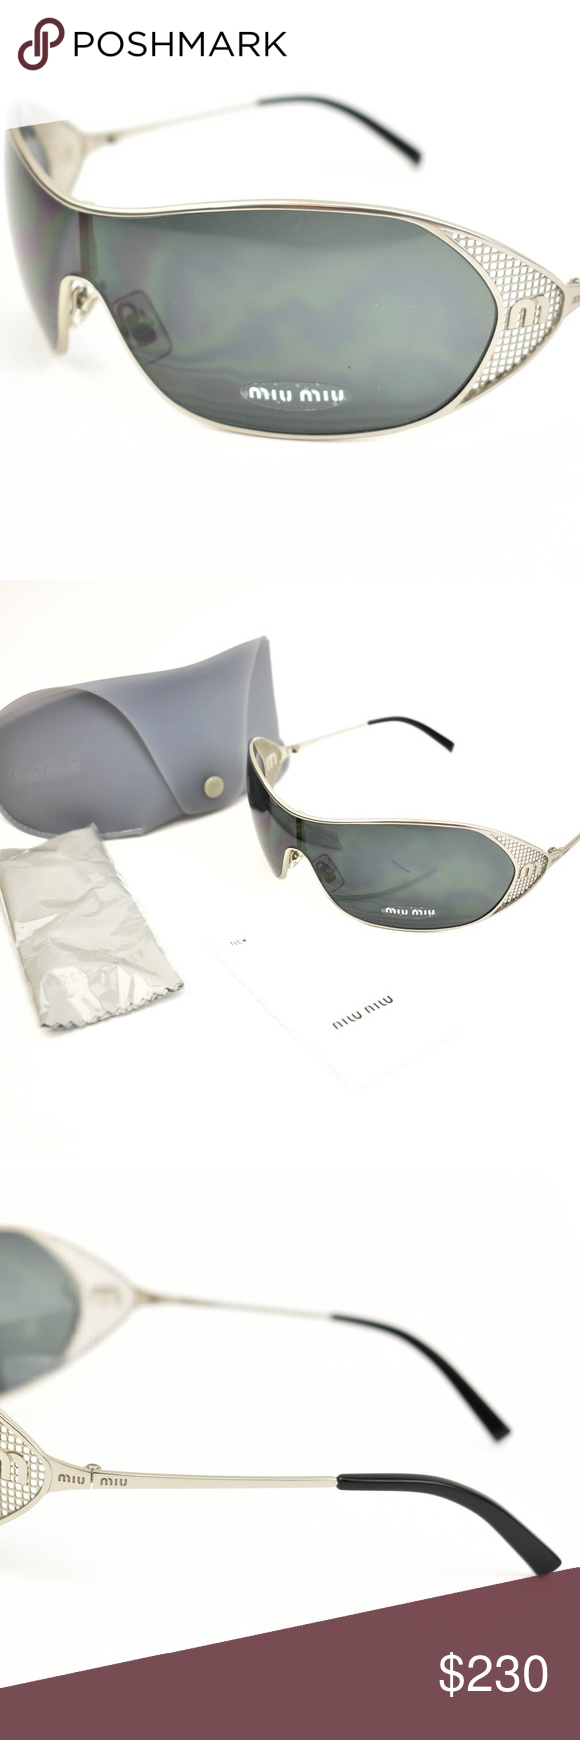 e99e6907e1 MIU MIU: Silver, Metal & Logo Shield Sunglasses s pre-owned (zoom ...